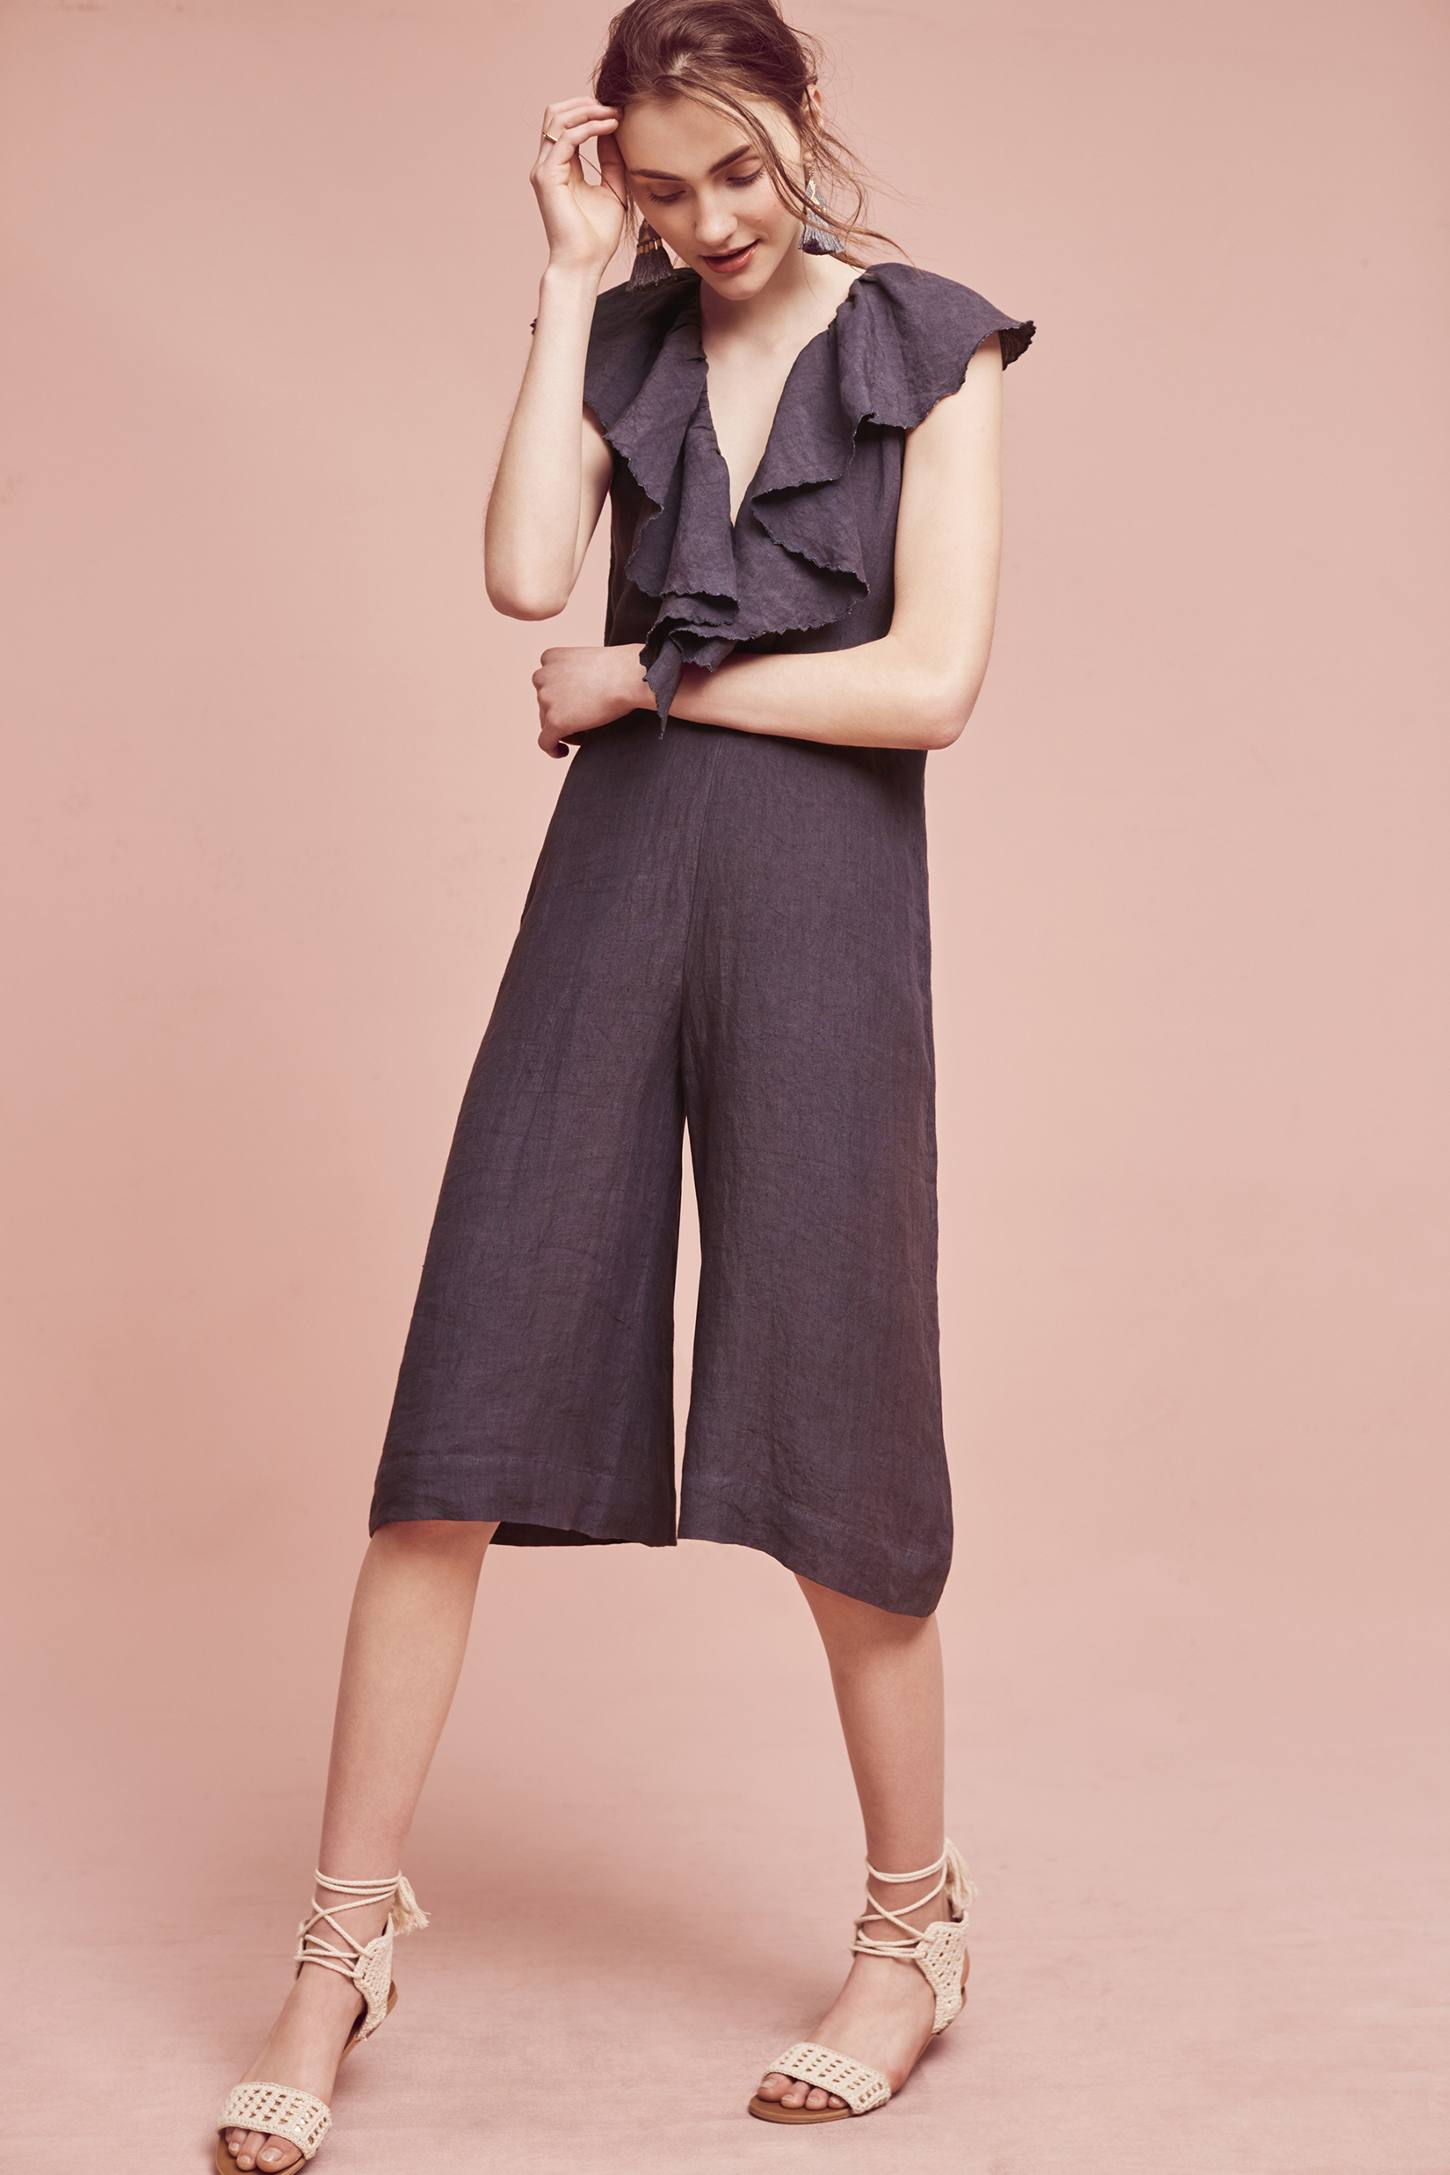 Slide View: 1: Cascada Jumpsuit